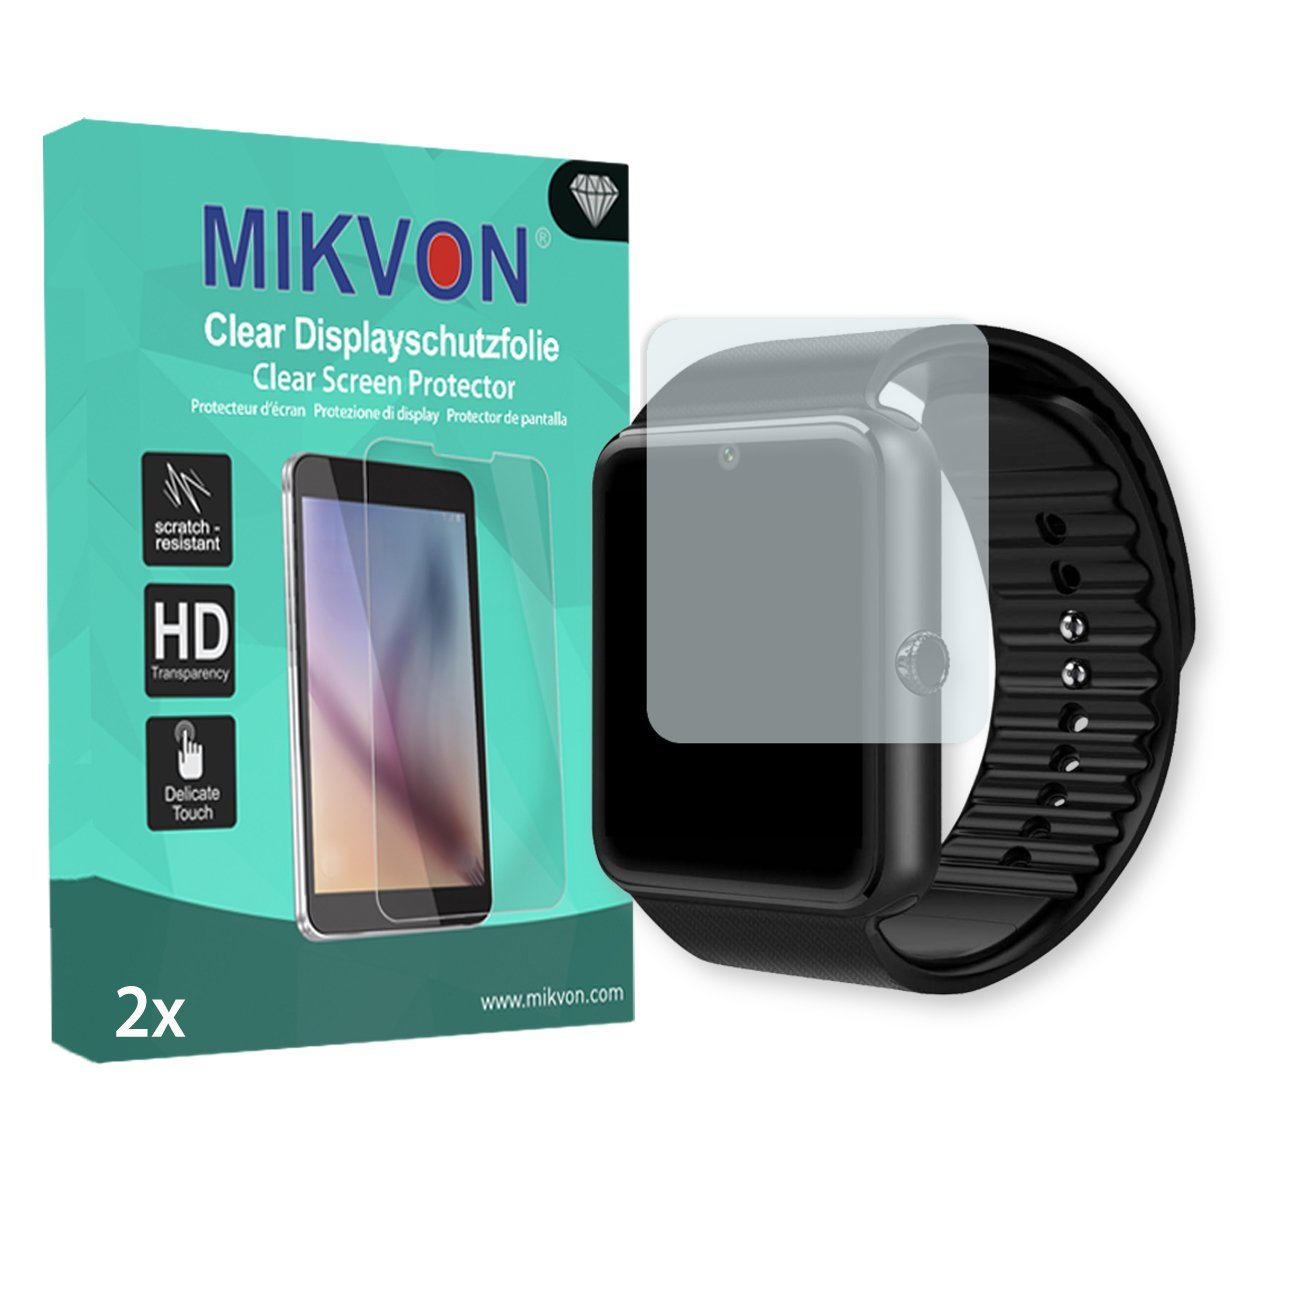 "MIKVON 2X Clear Screen Protector LaTEC 1.54"" Bluetooth Smart Watch - Retail Package Accessories (Intentionally Smaller Than The Display Due to its Curved Surface)"